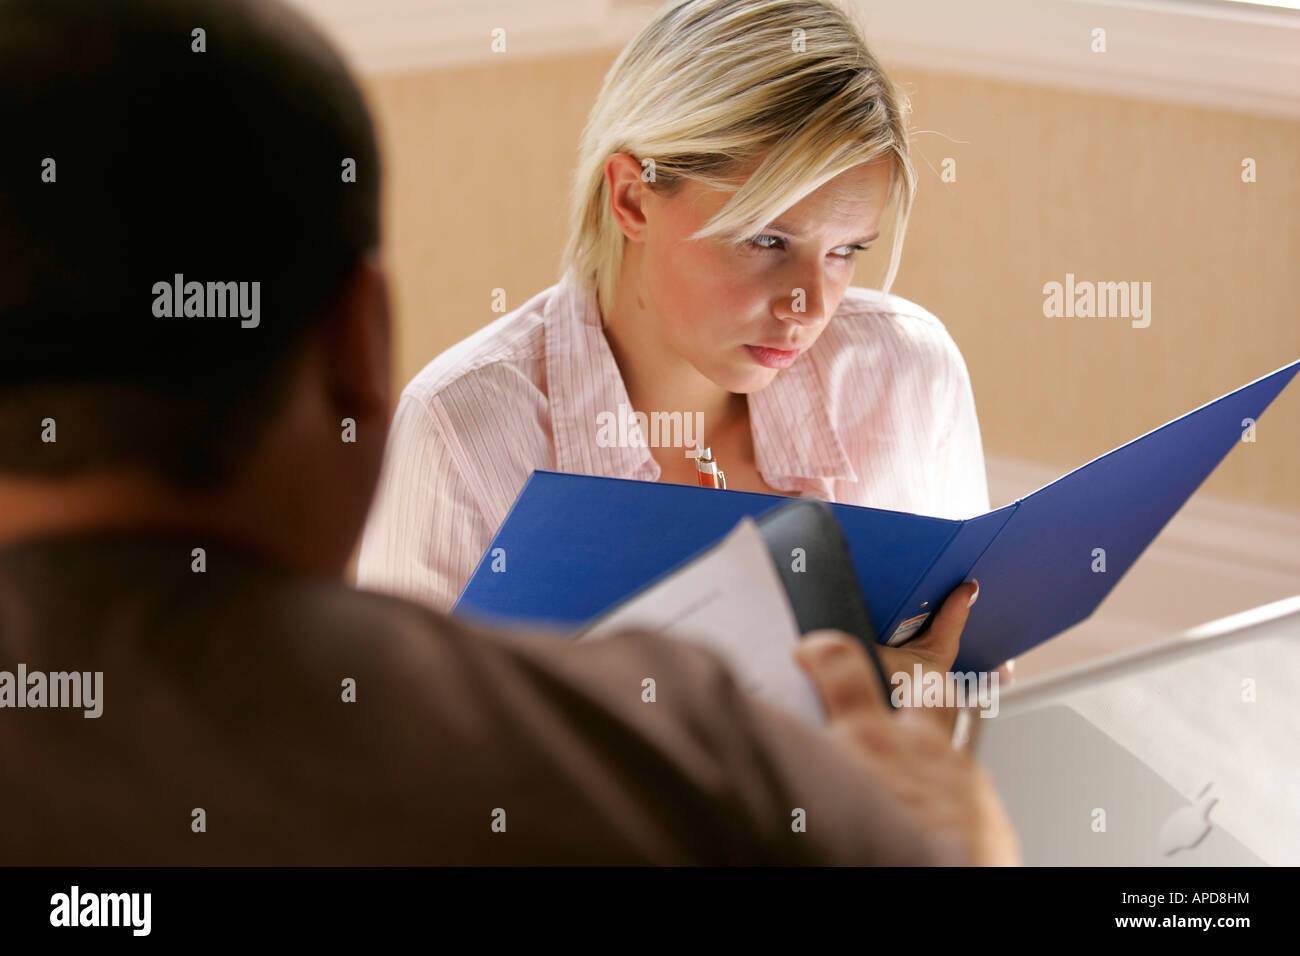 woman interviewing a candidate for a job - Stock Image